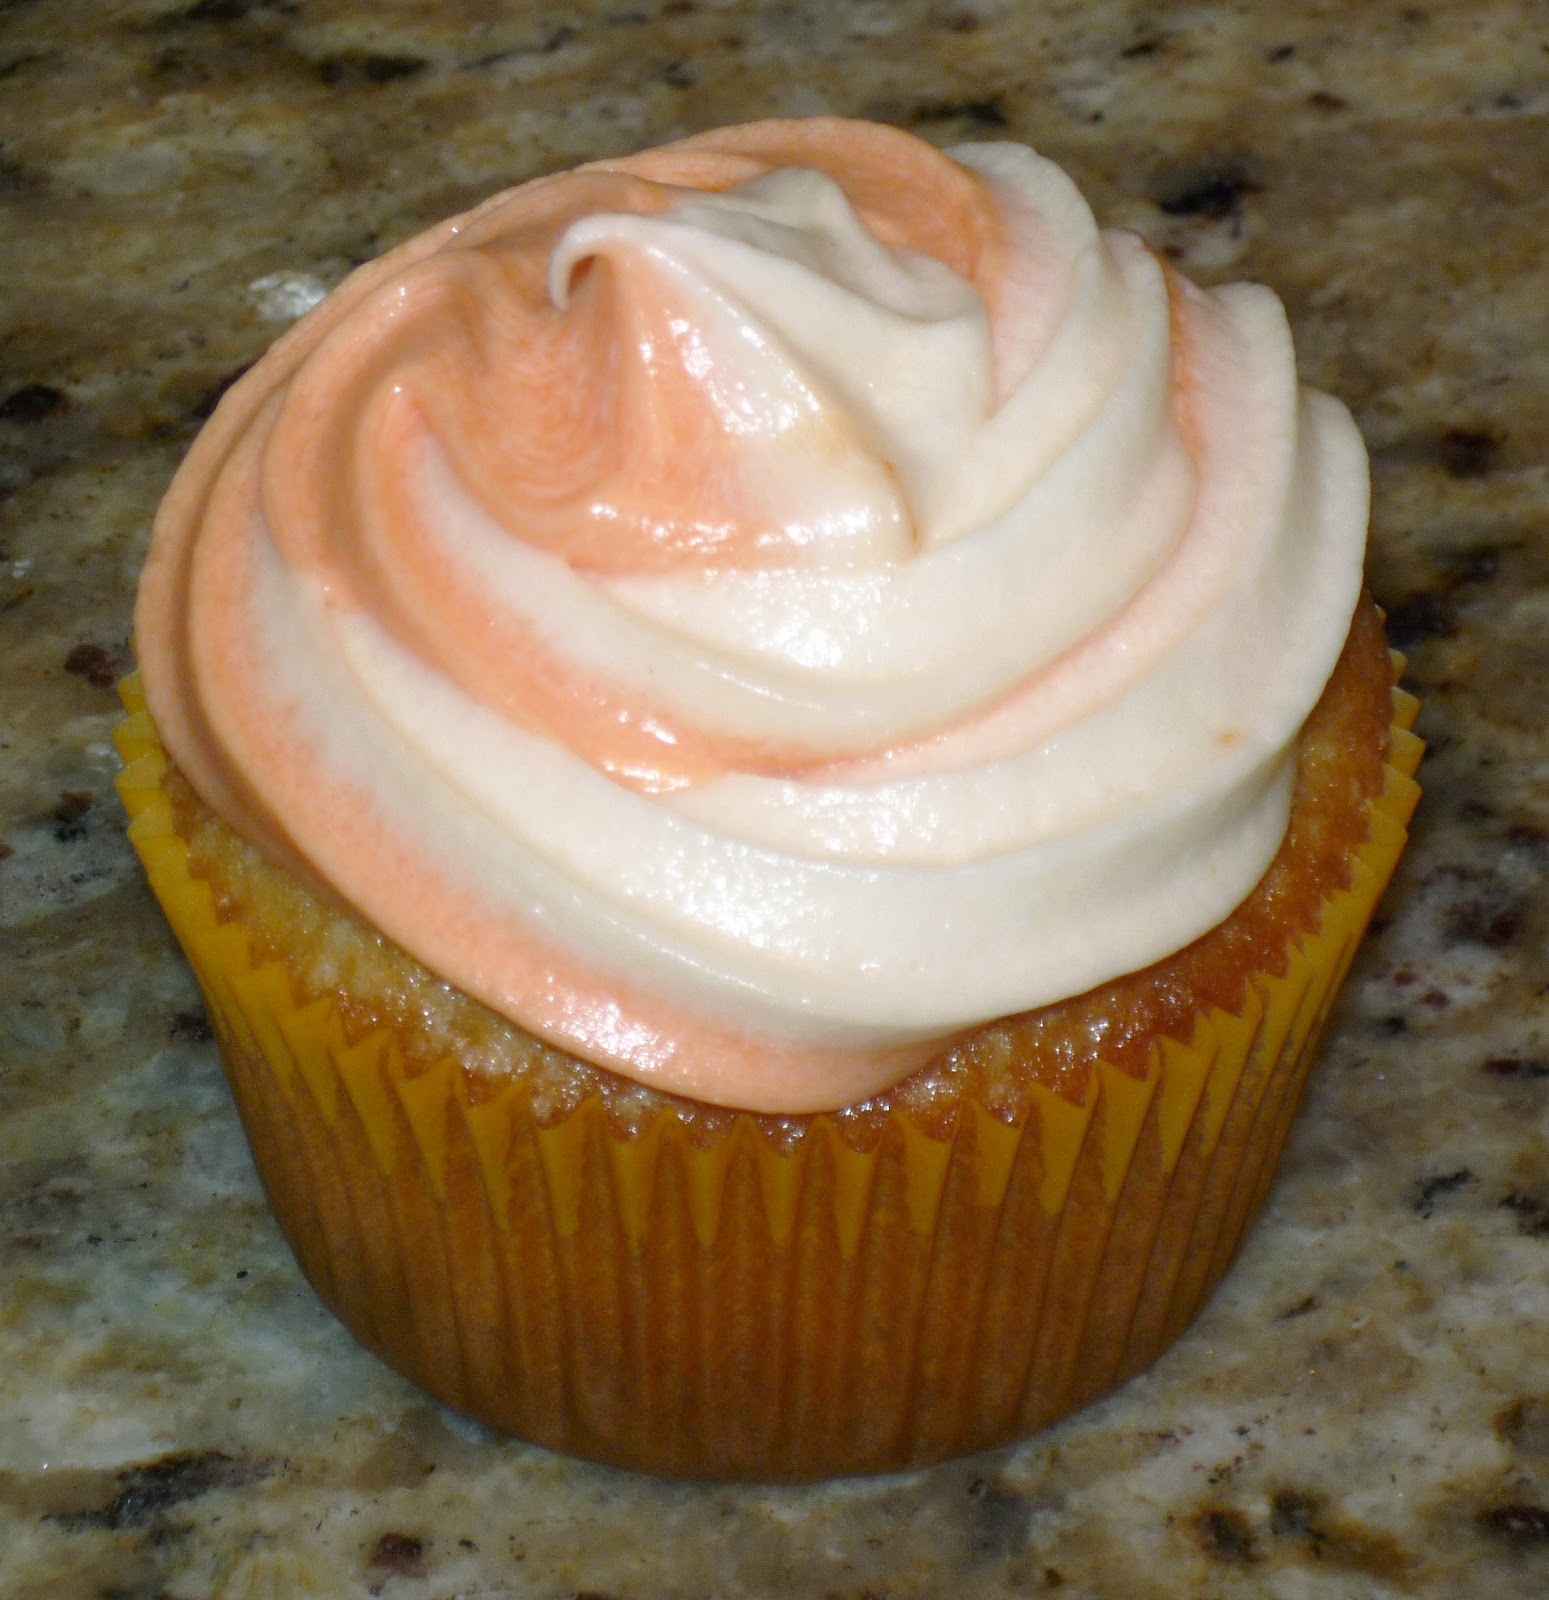 The Great Cupcake Adventure: Creamsicle Cupcakes